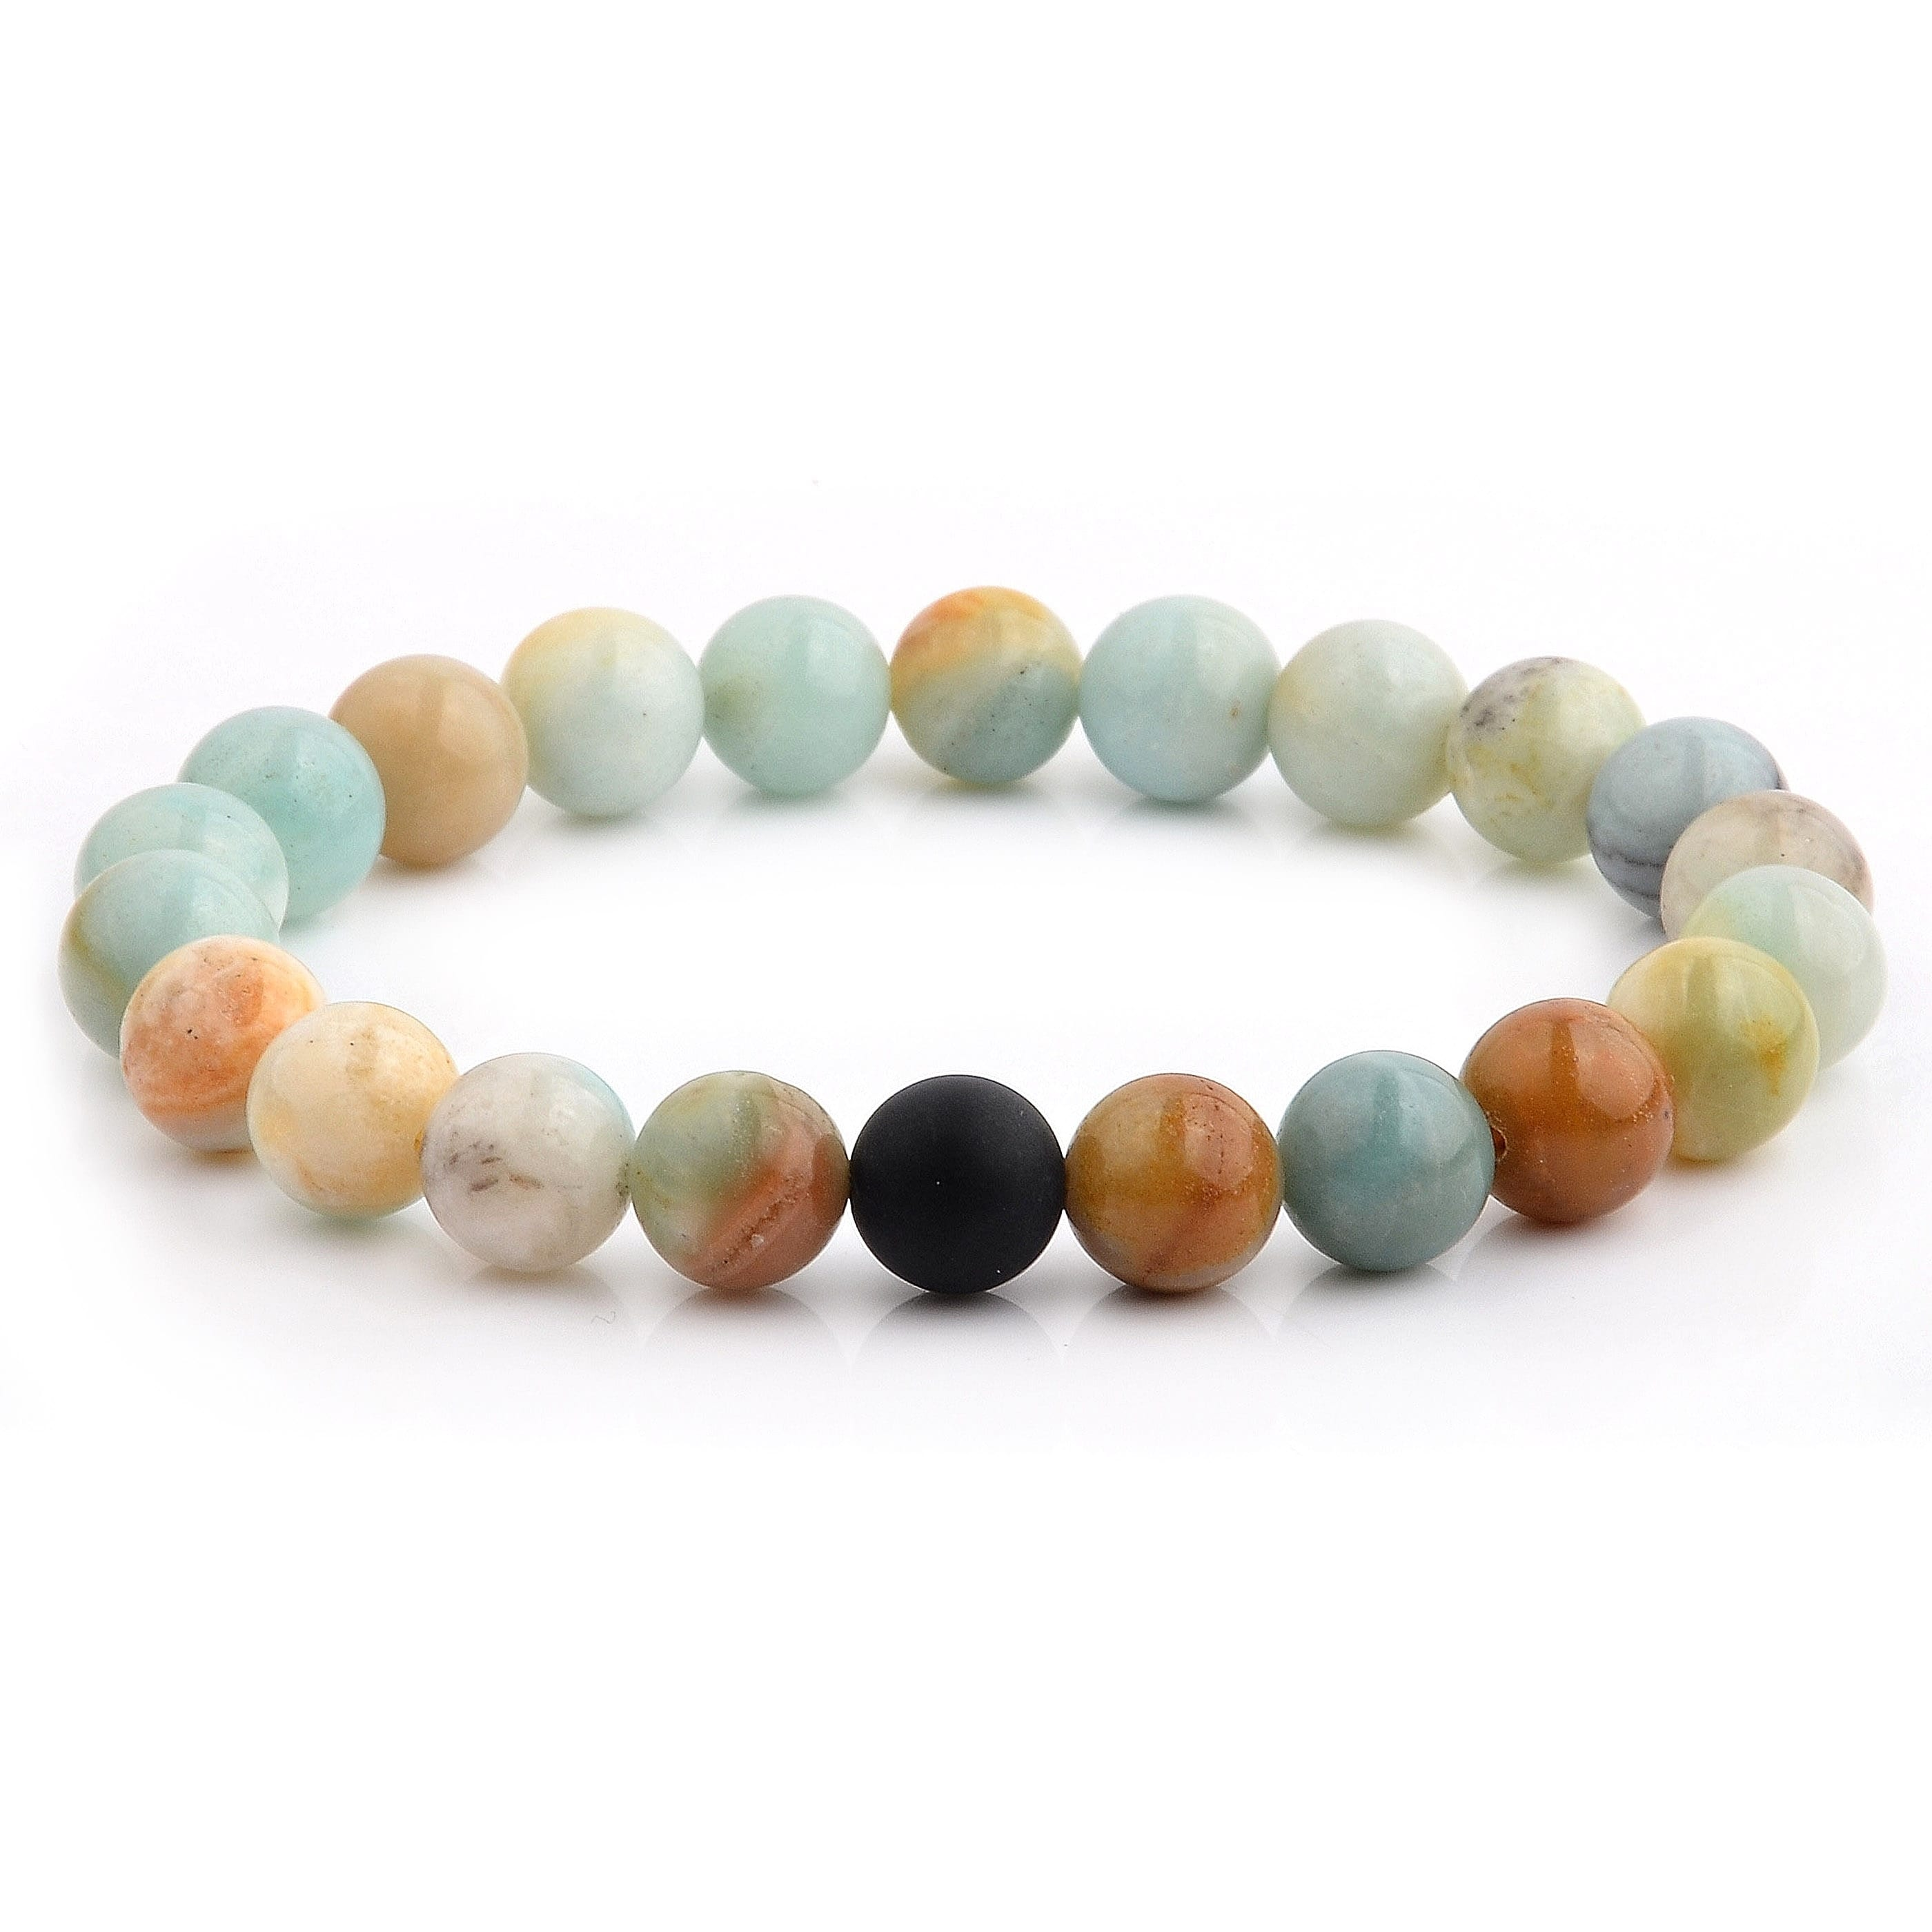 matte natural product love stone store pendant bead india agate yoga bracelet round beads key mala